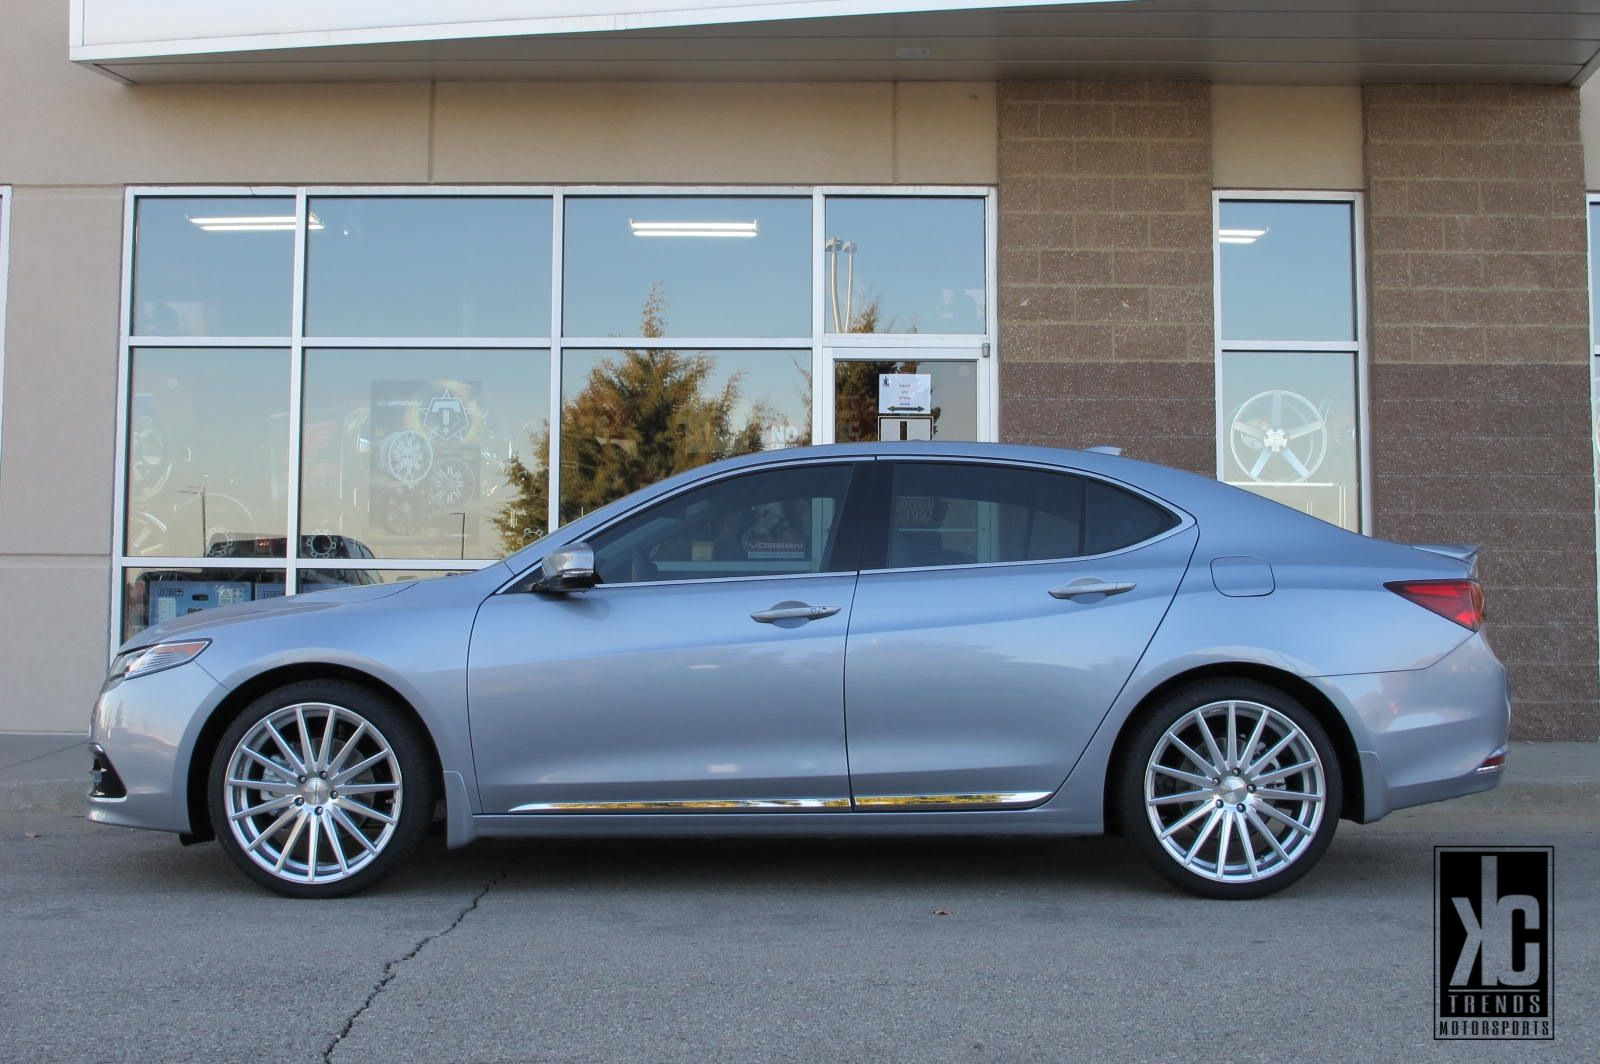 acura tlx 2015 silver. acura tlx with 19 tlx 2015 silver